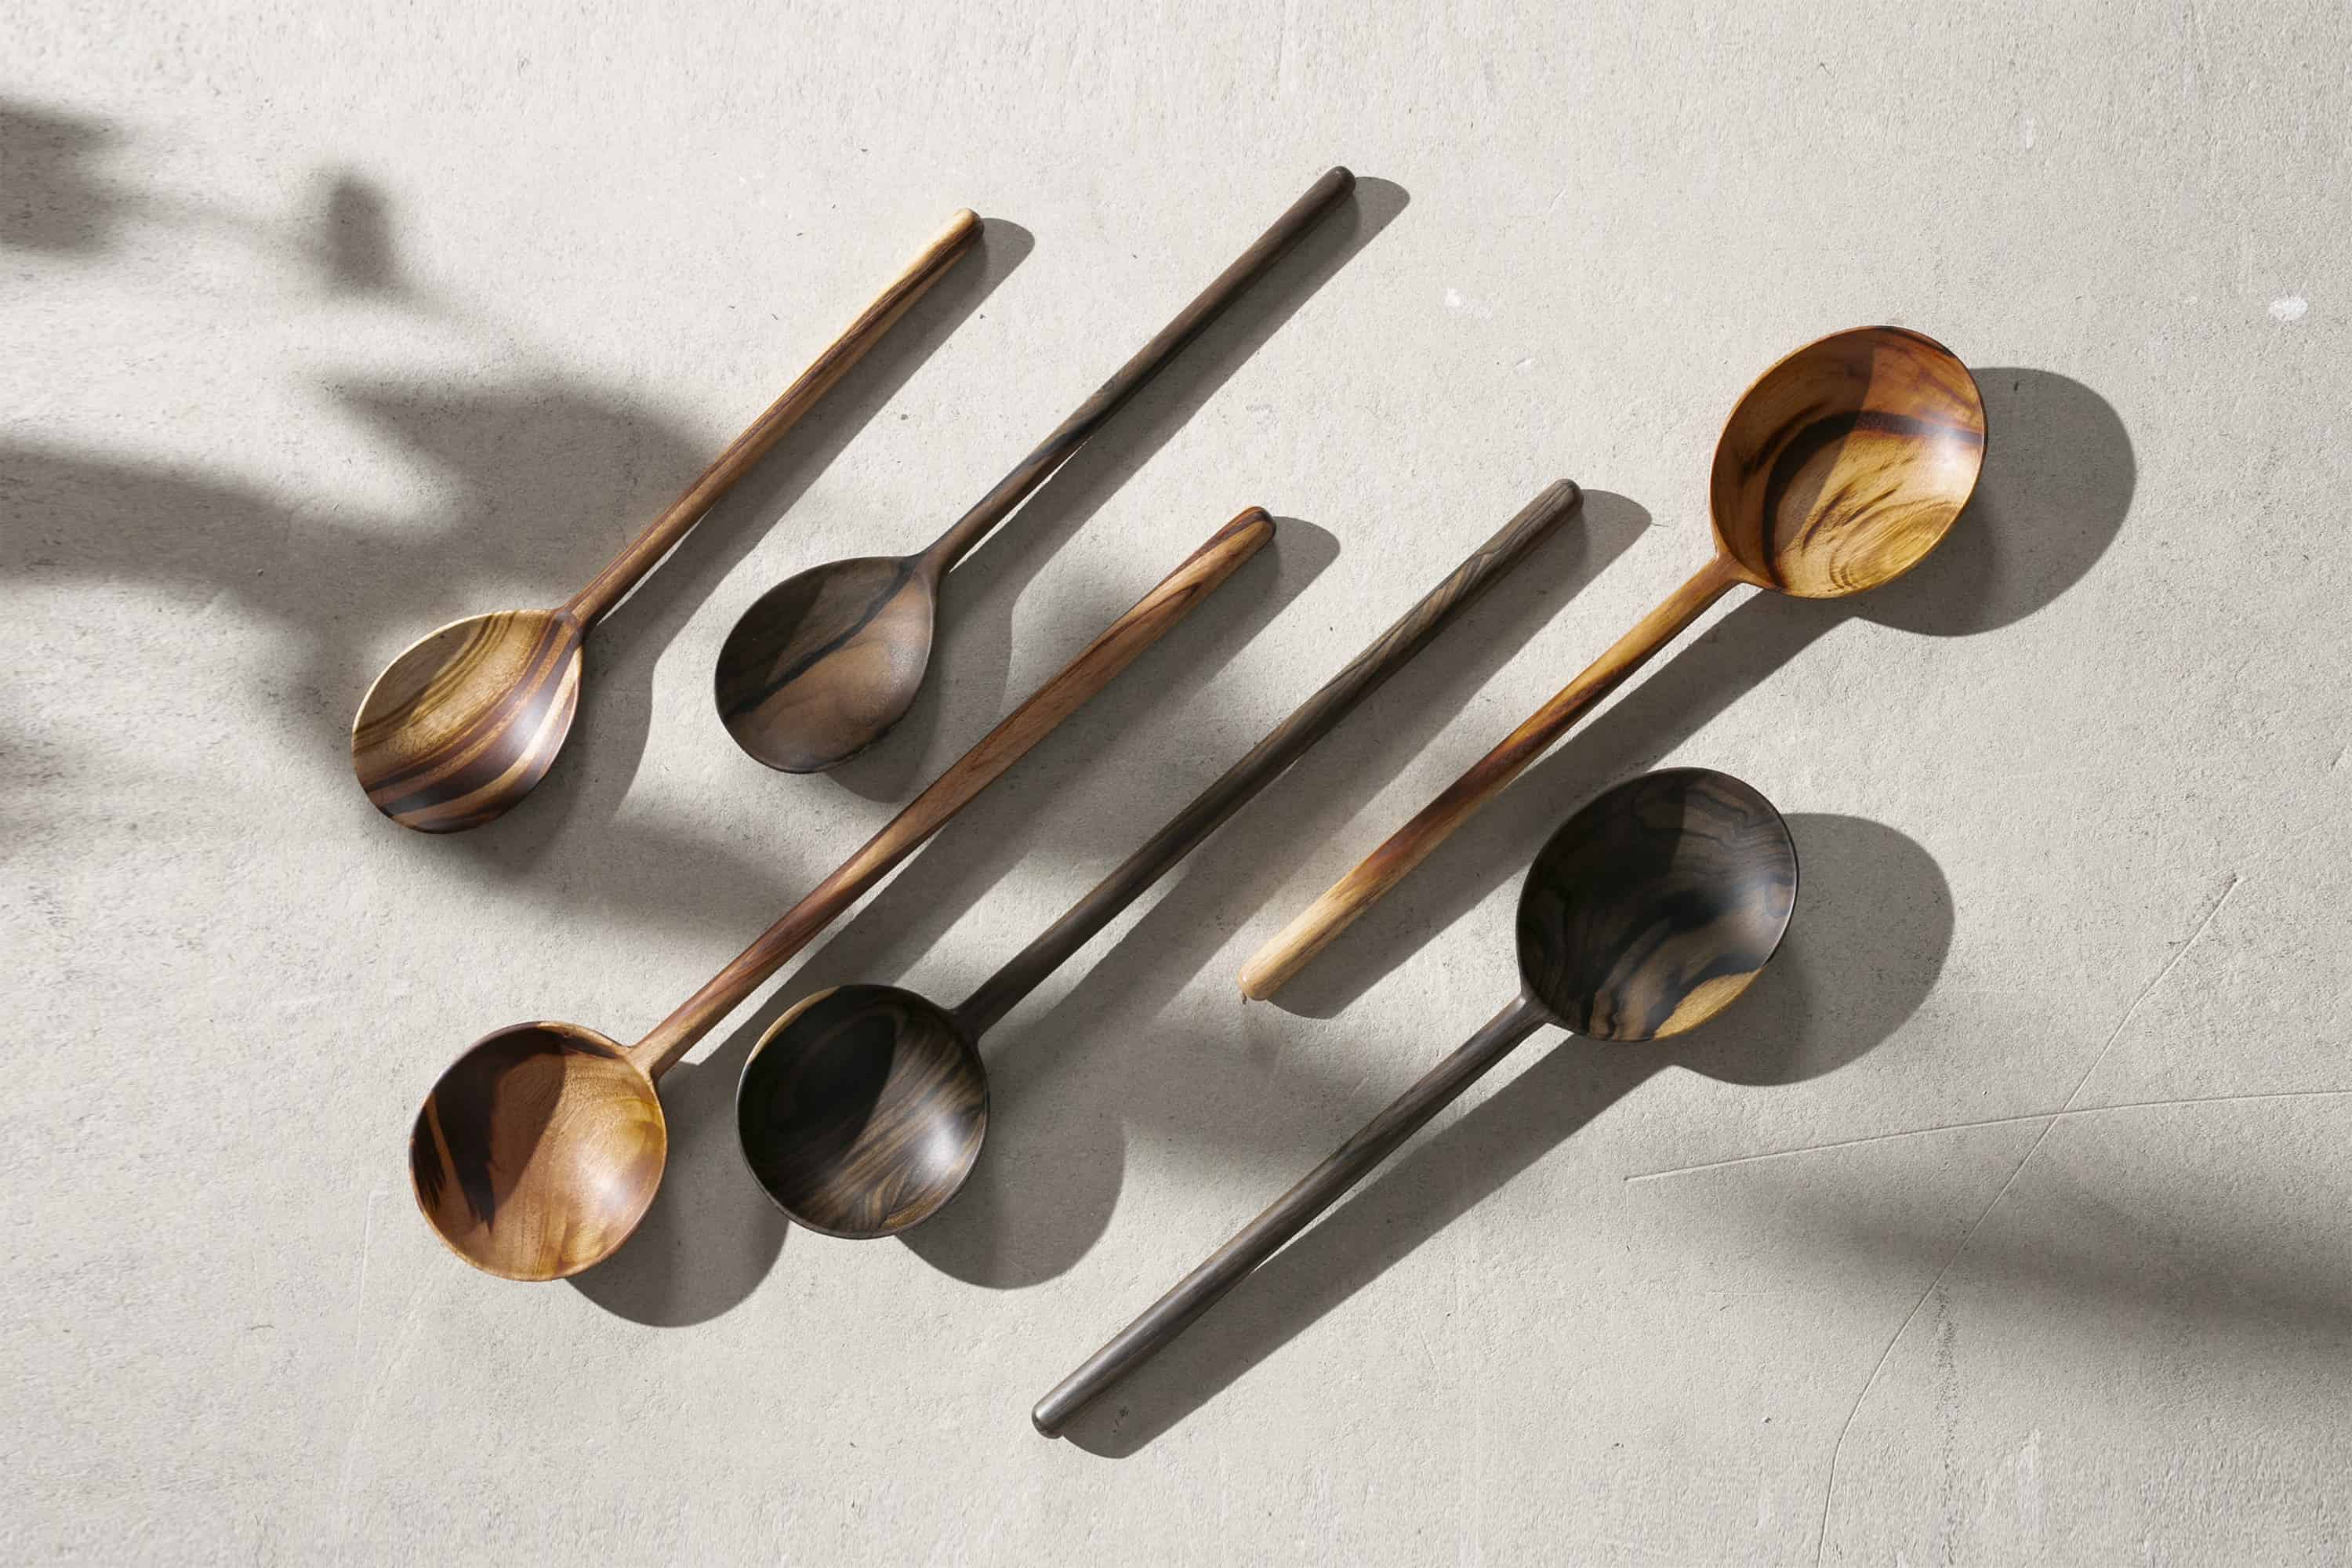 Wholesale wooden cooking utensils